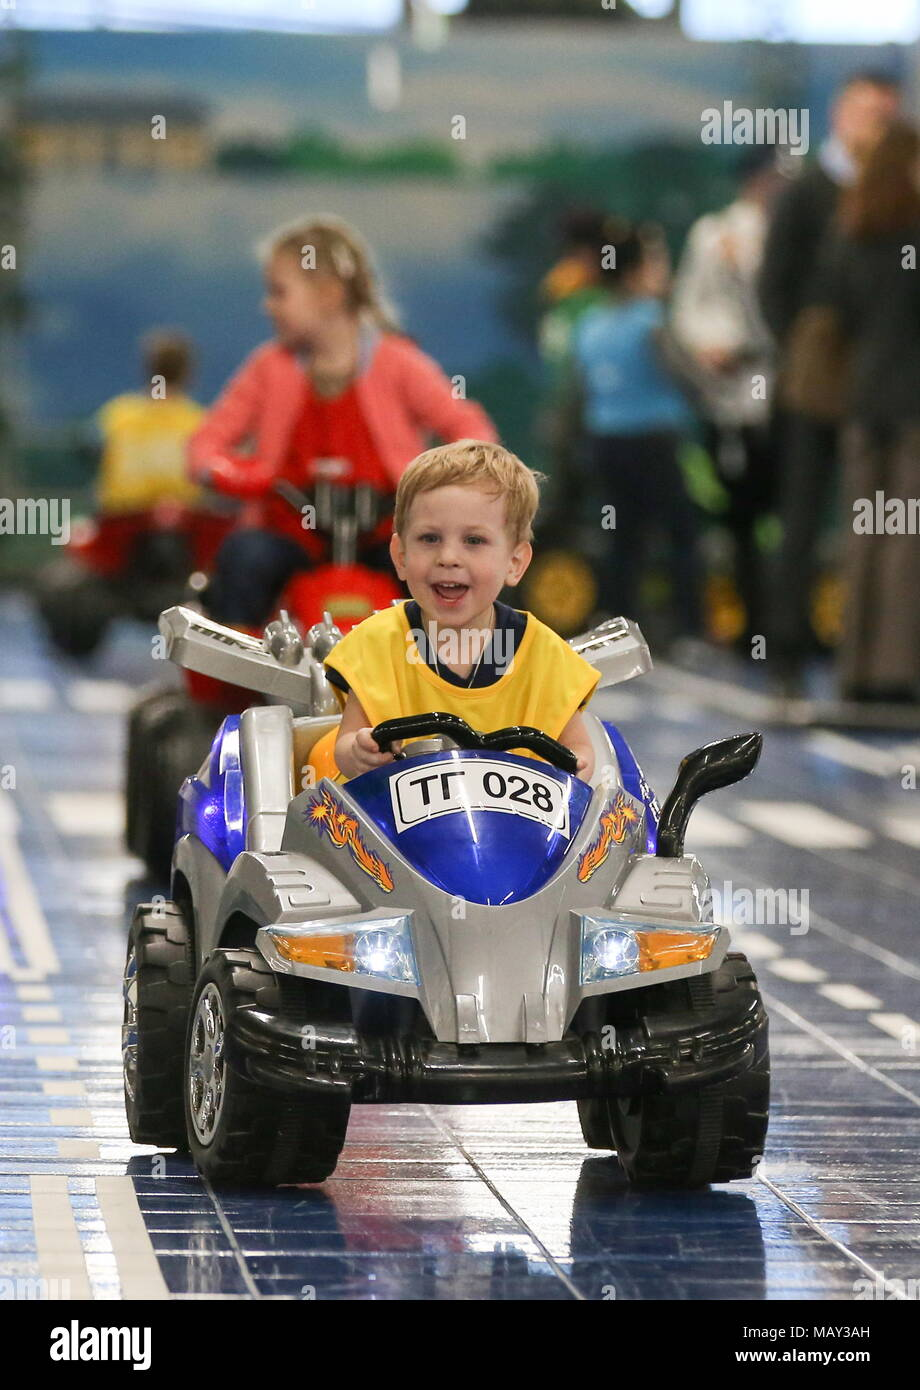 8c20cdc9cbe ST PETERSBURG, RUSSIA - APRIL 5, 2018: A boy driving an electric car at the  TachkiGrad children's center at the Continent Shopping Mall.